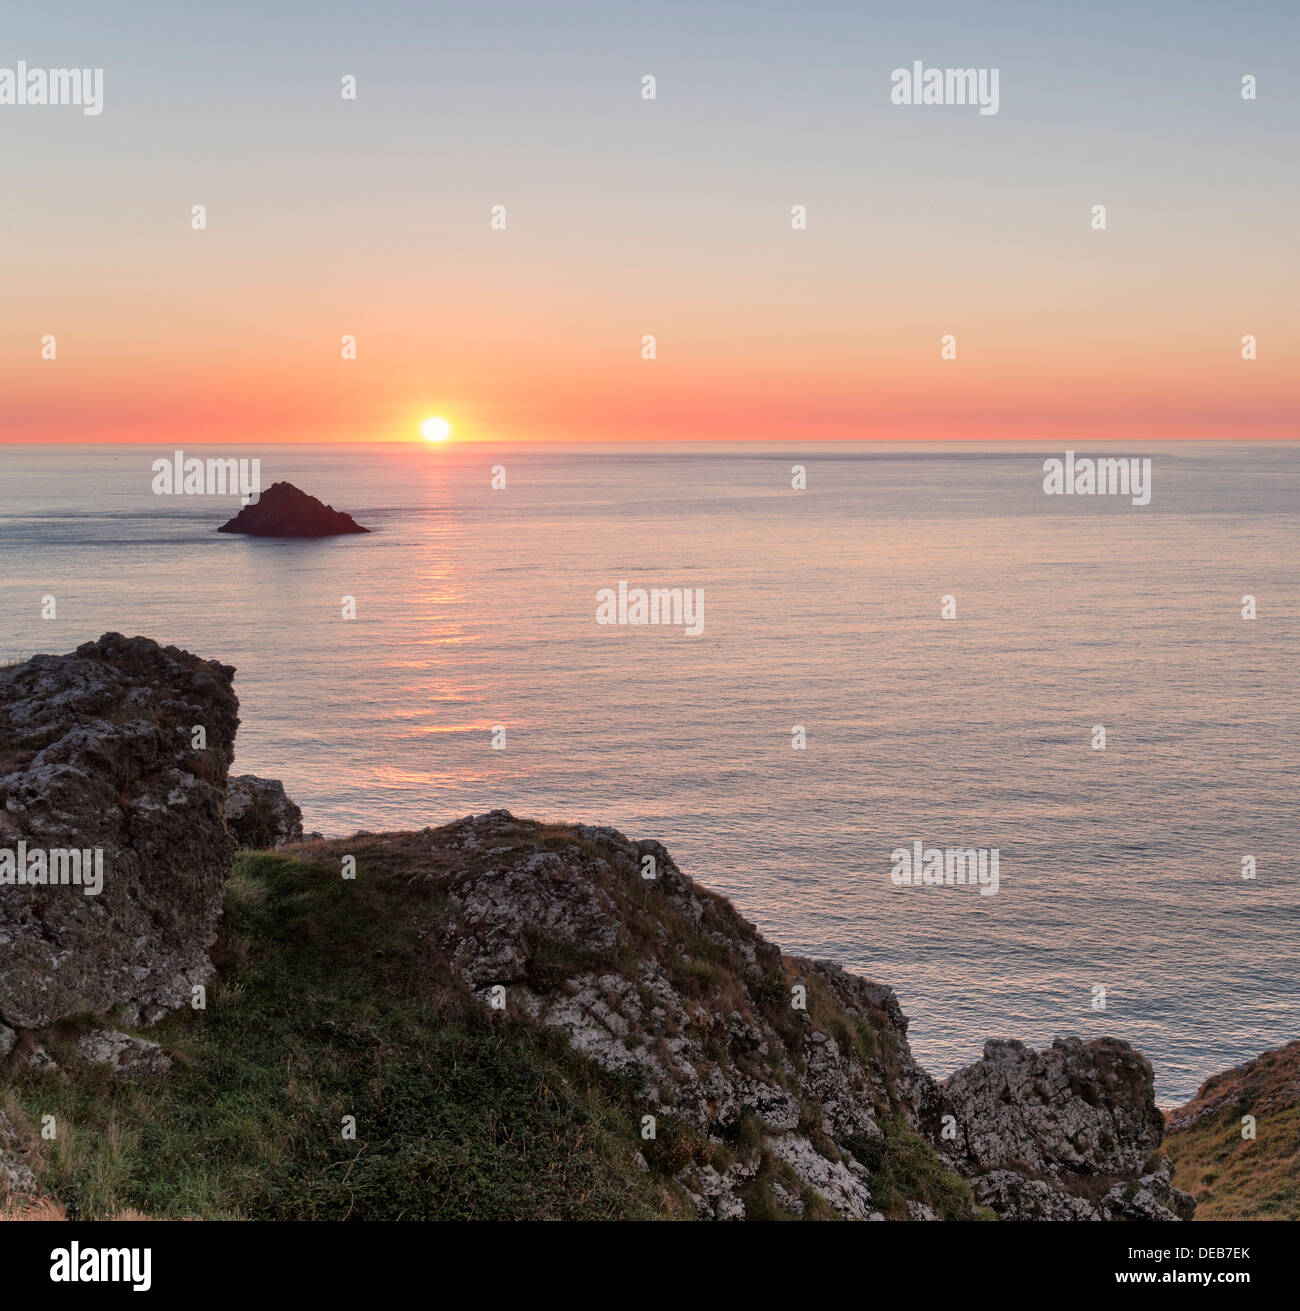 Sunset over the Rumps on Pentire Headland on Cornwall's Atlantic coast - Stock Image